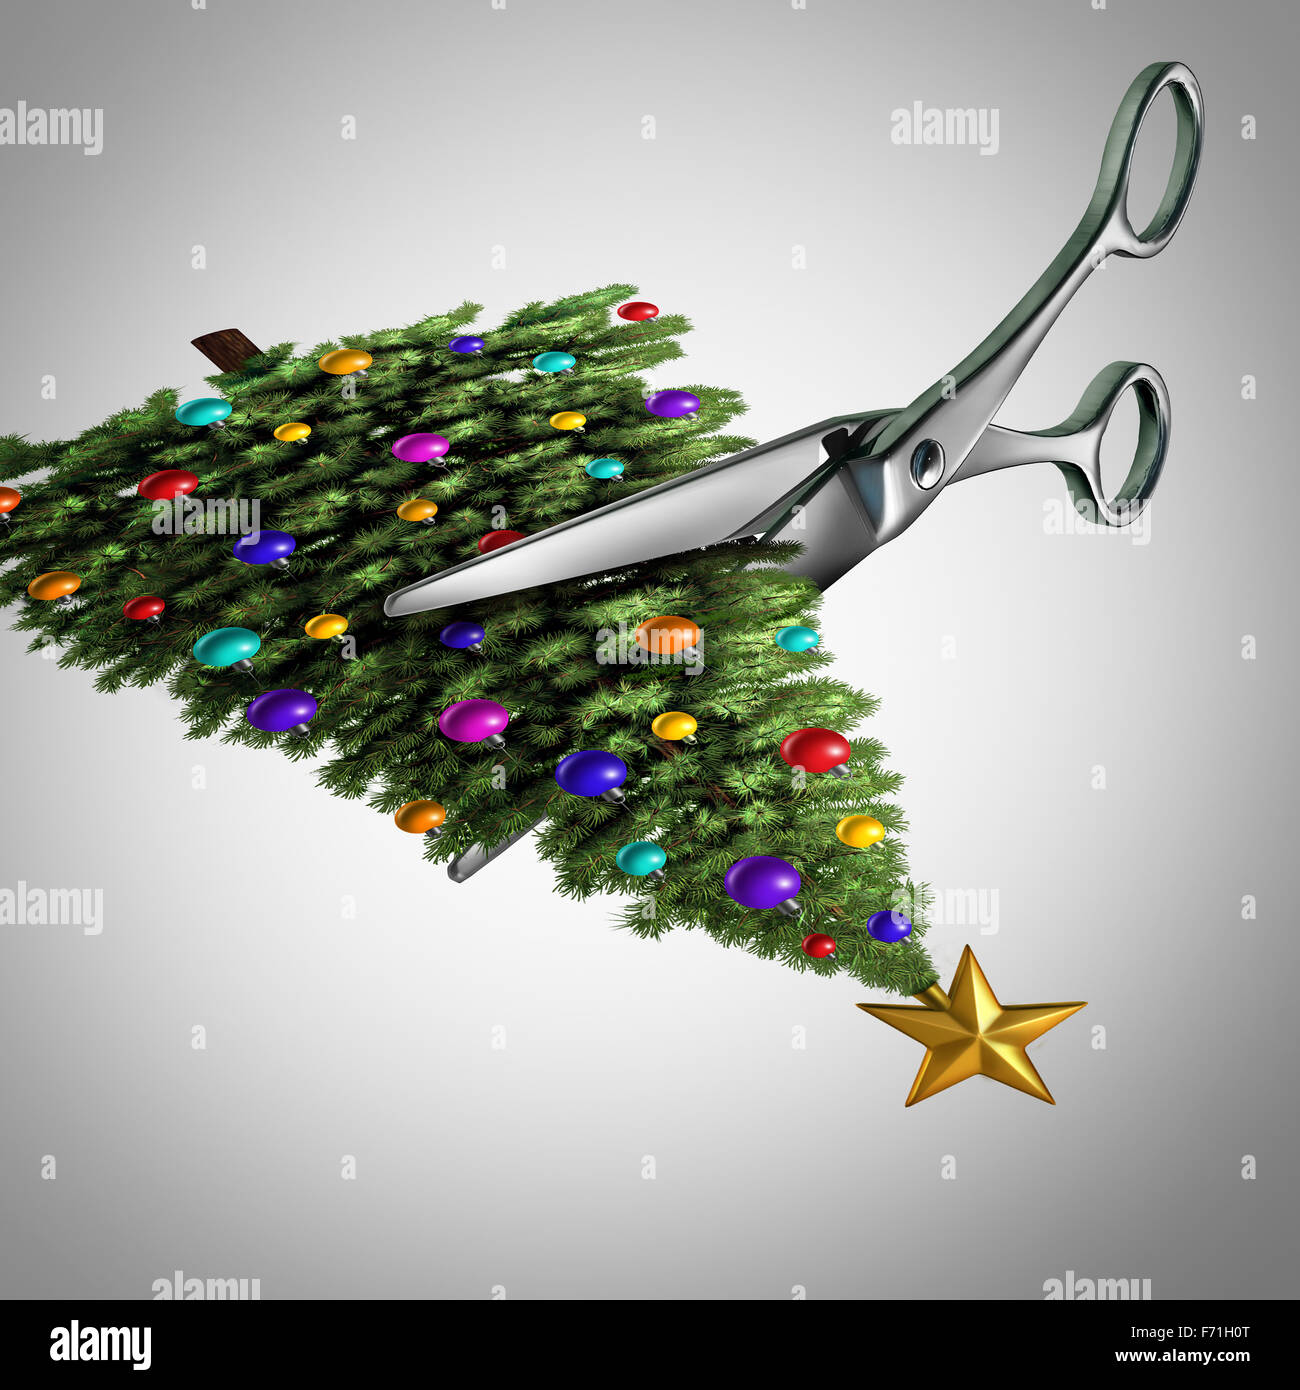 Cut back on christmas concept as scissors cutting a picture of a decorated christmas tree as a metaphor for trimming - Stock Image